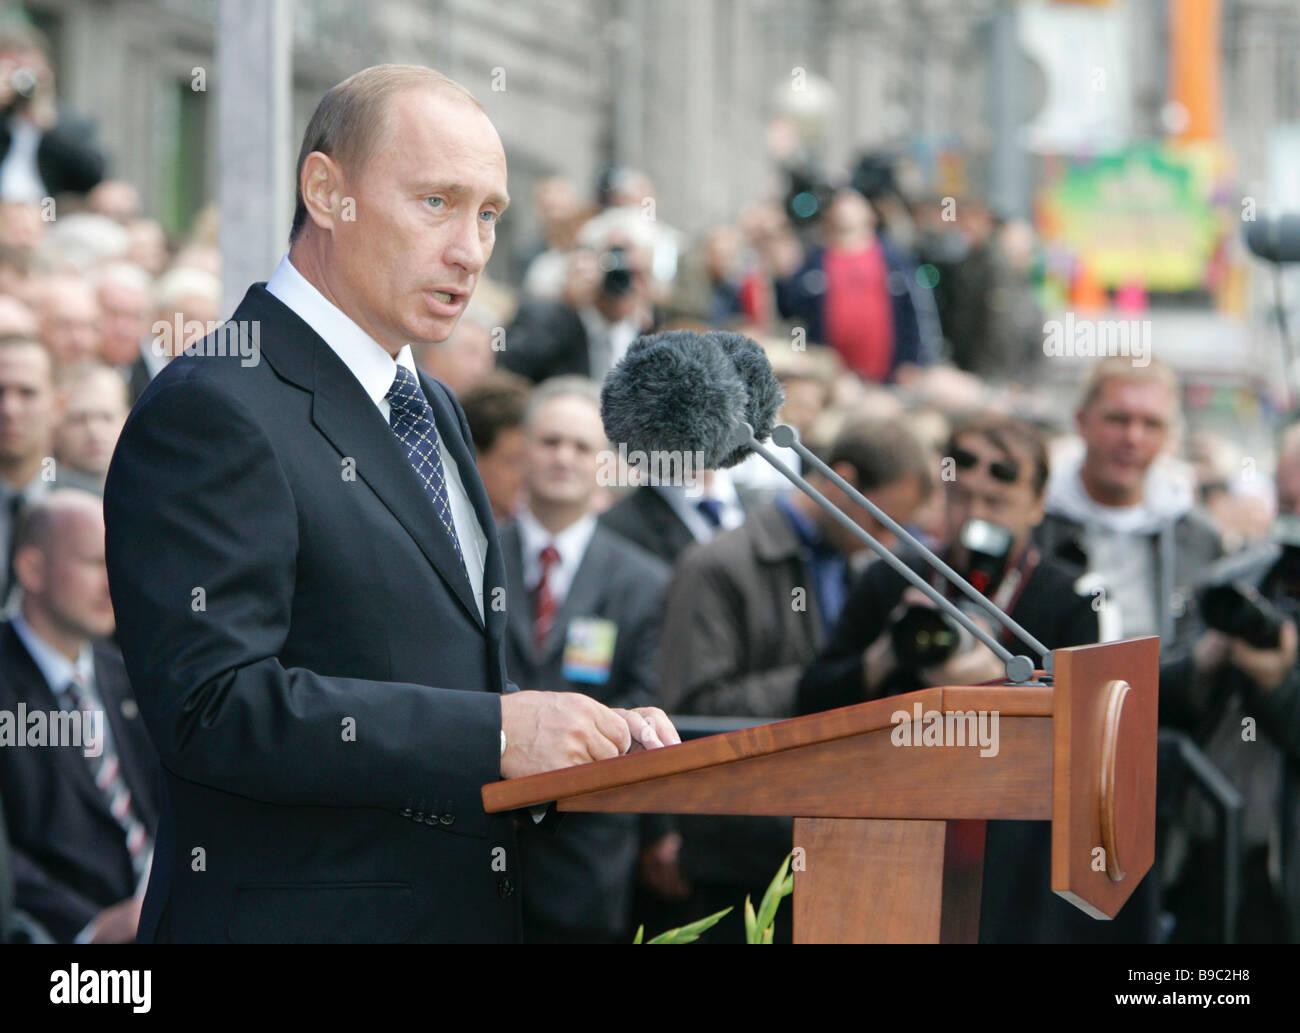 Russian President Vladimir Putin in the foreground speaking at the Moscow City Day celebrations - Stock Image